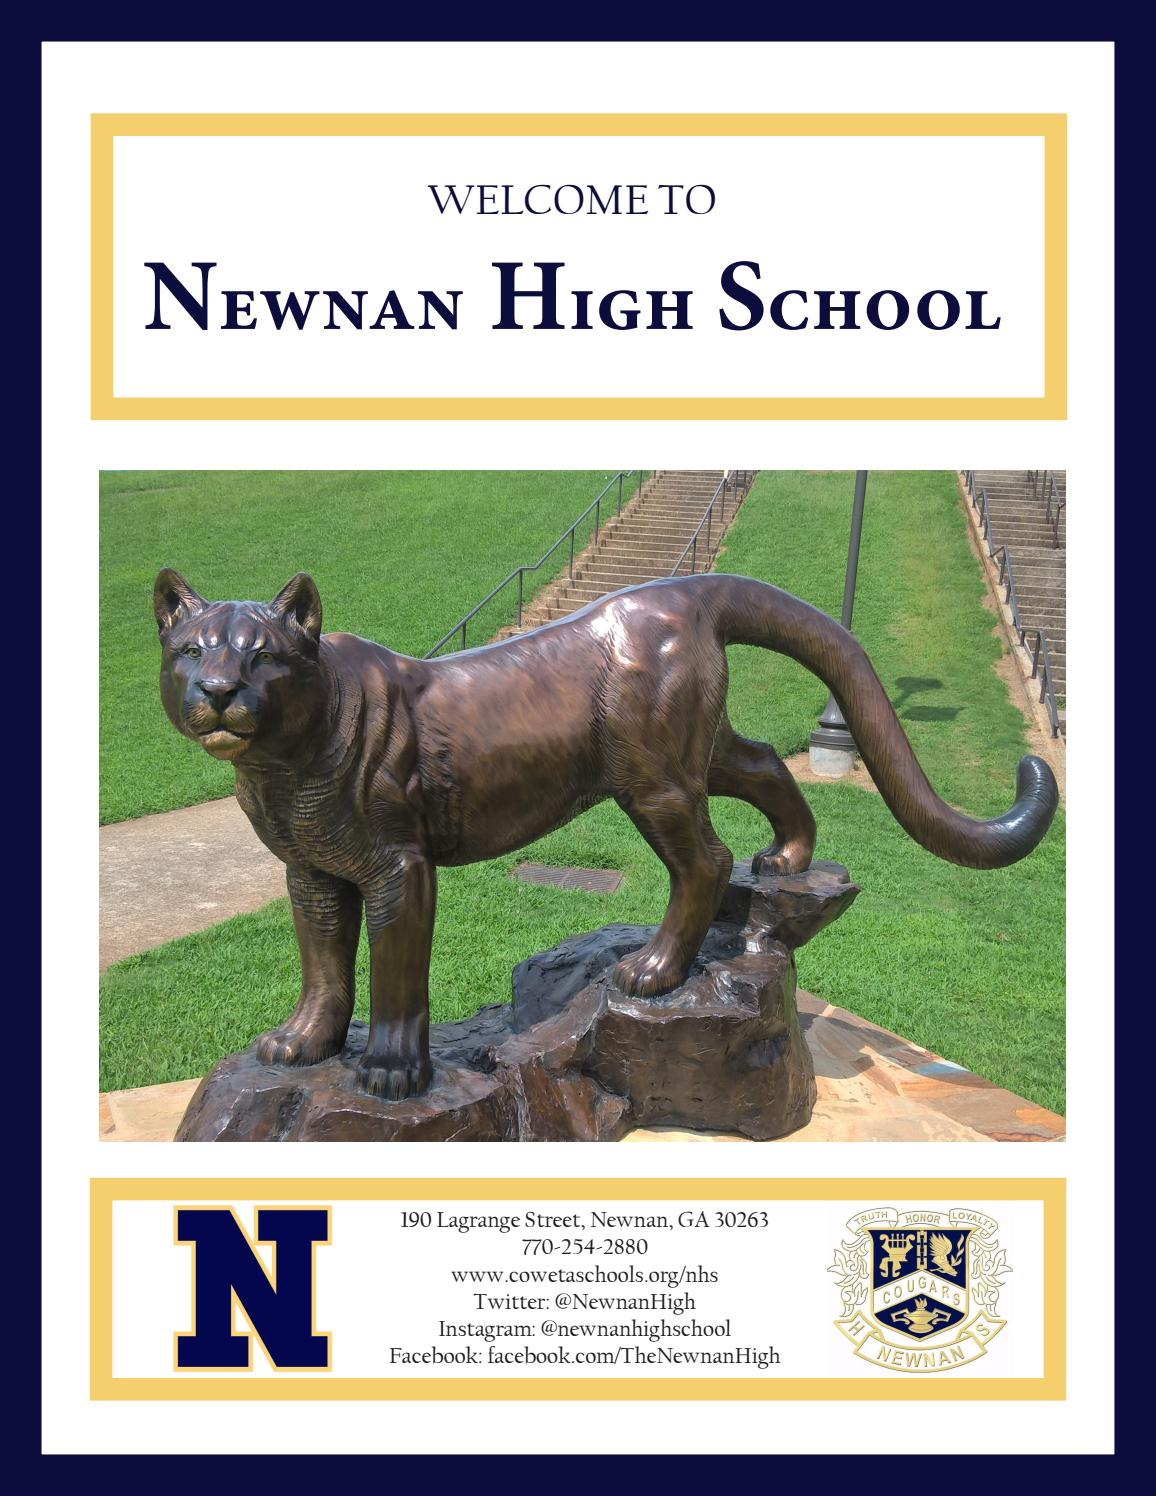 We are newnan newnan high school visitors guide by newnan high we are newnan newnan high school visitors guide by newnan high school newspaperjournalism issuu kristyandbryce Image collections